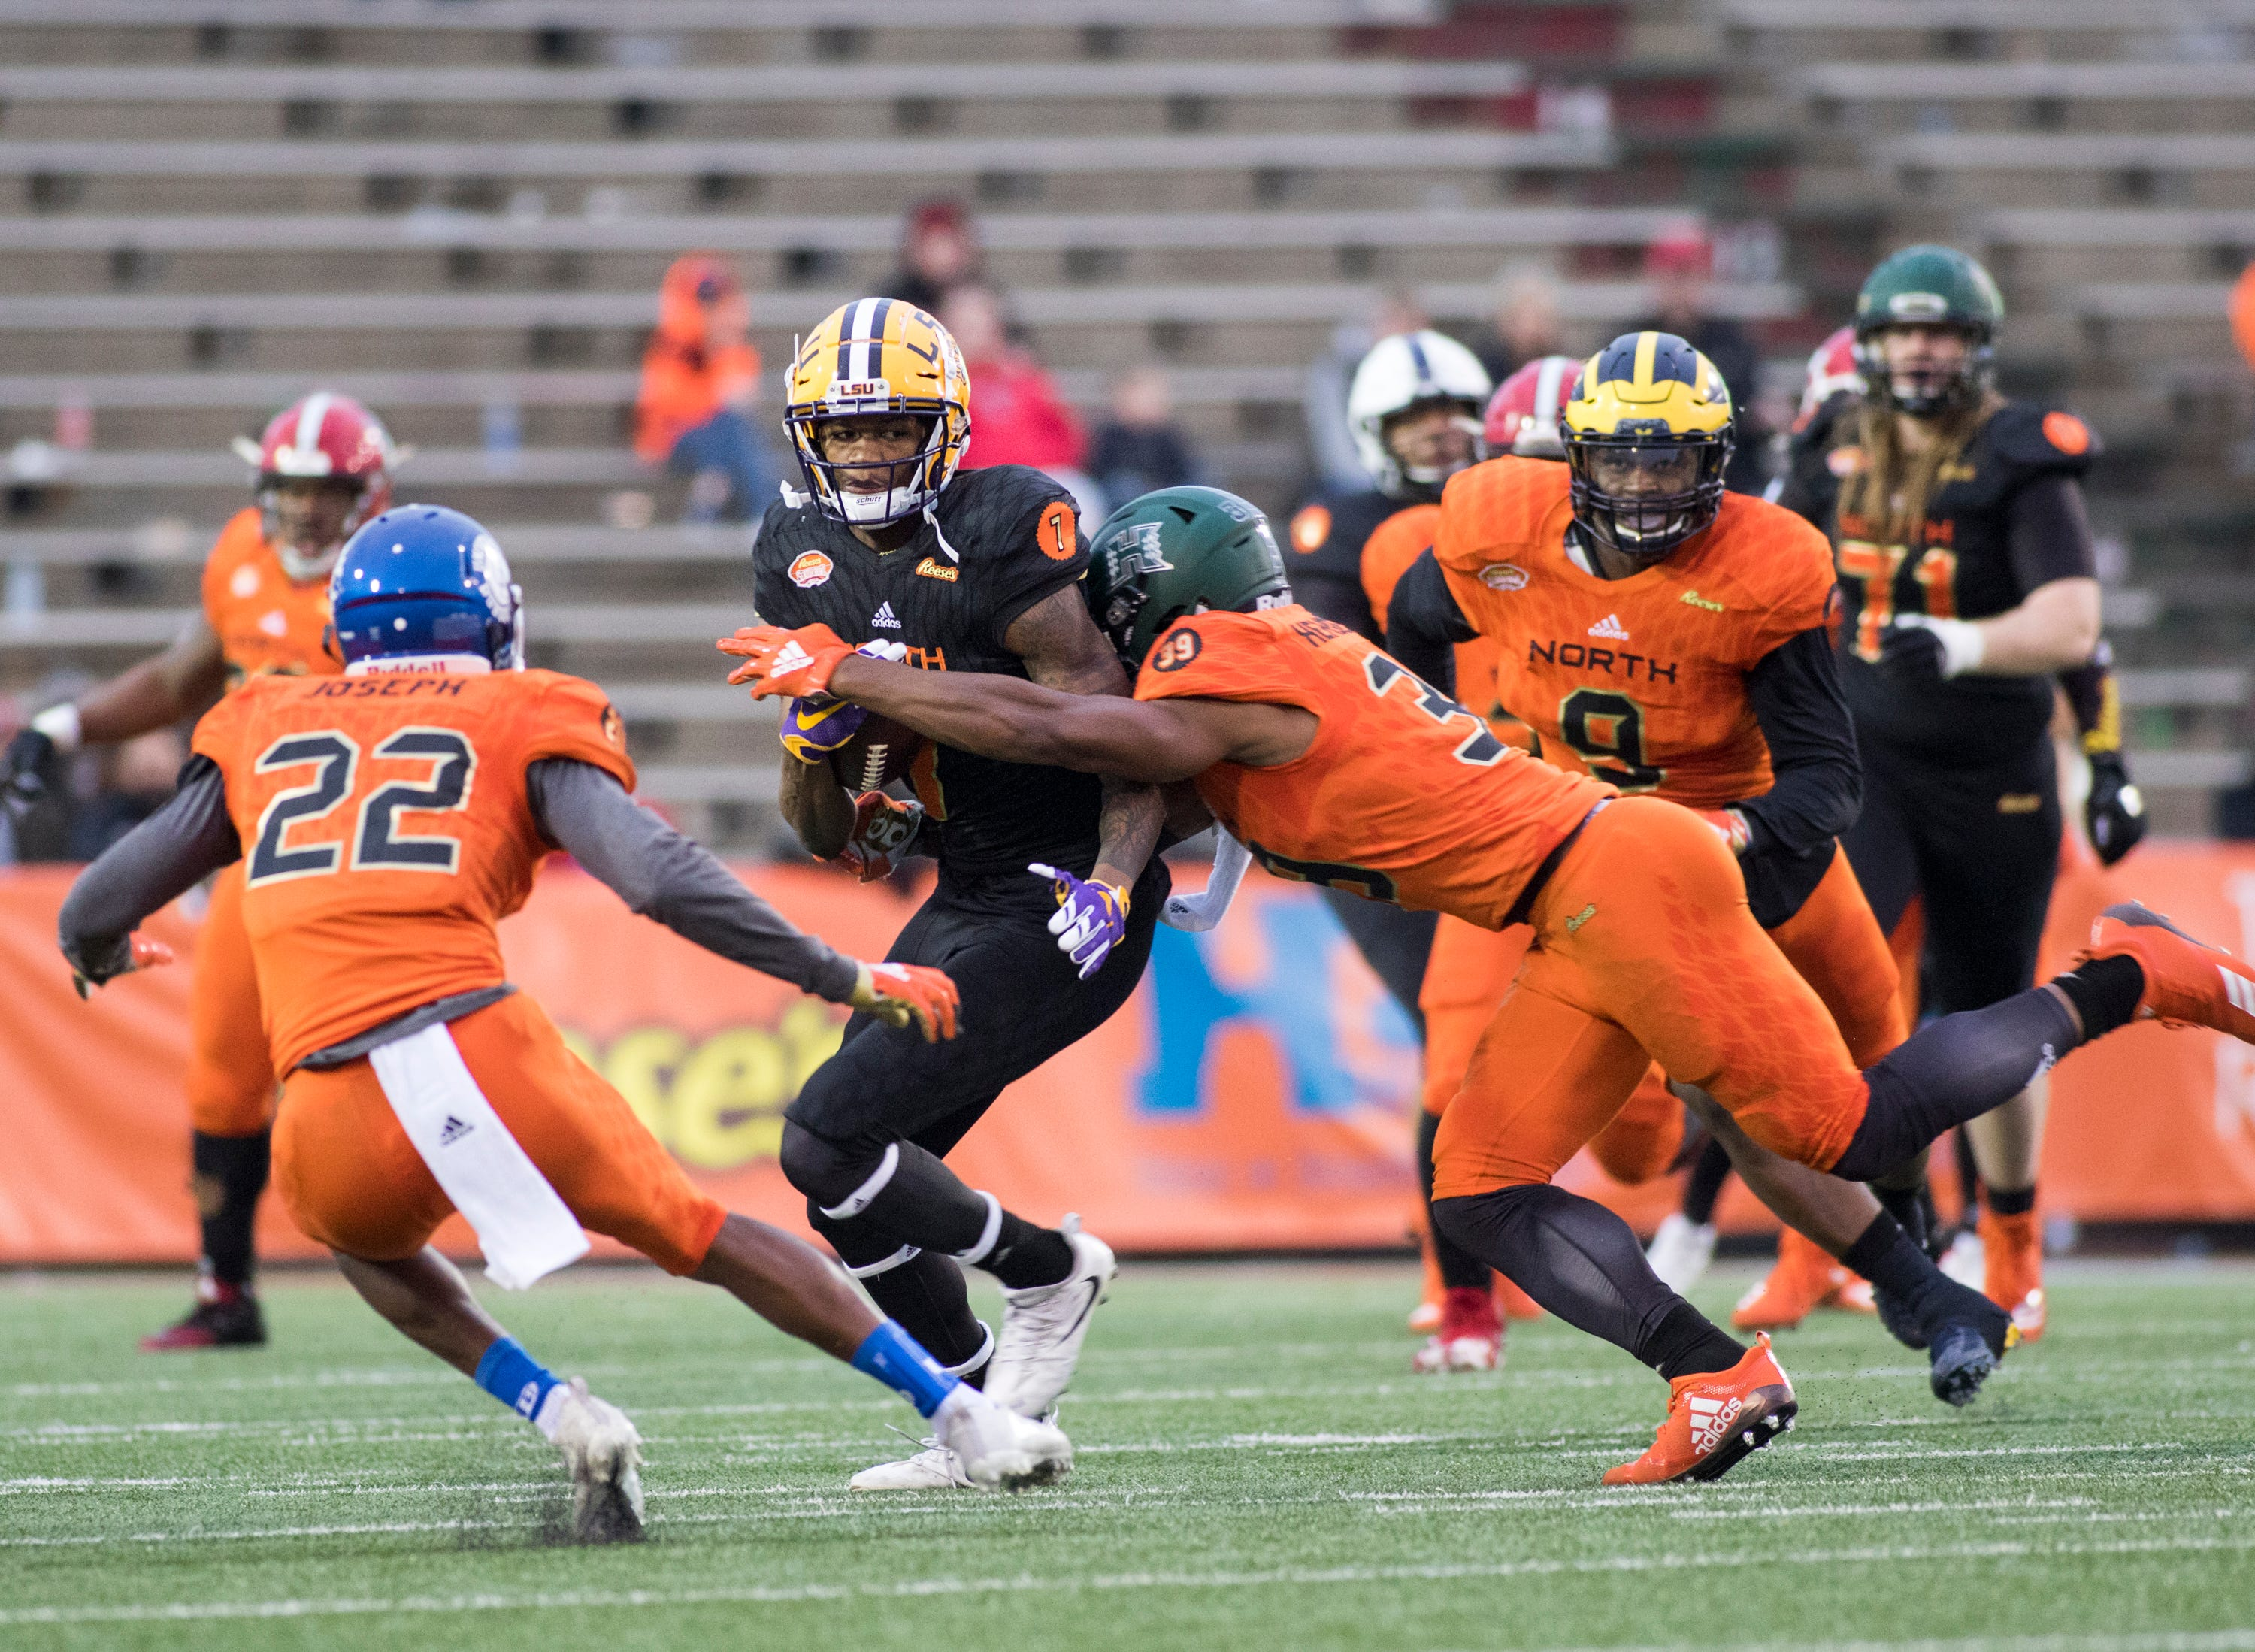 LSU's D.J. Chark spun stats at Senior Bowl, and LaCouture and Gilmore combined for havoc